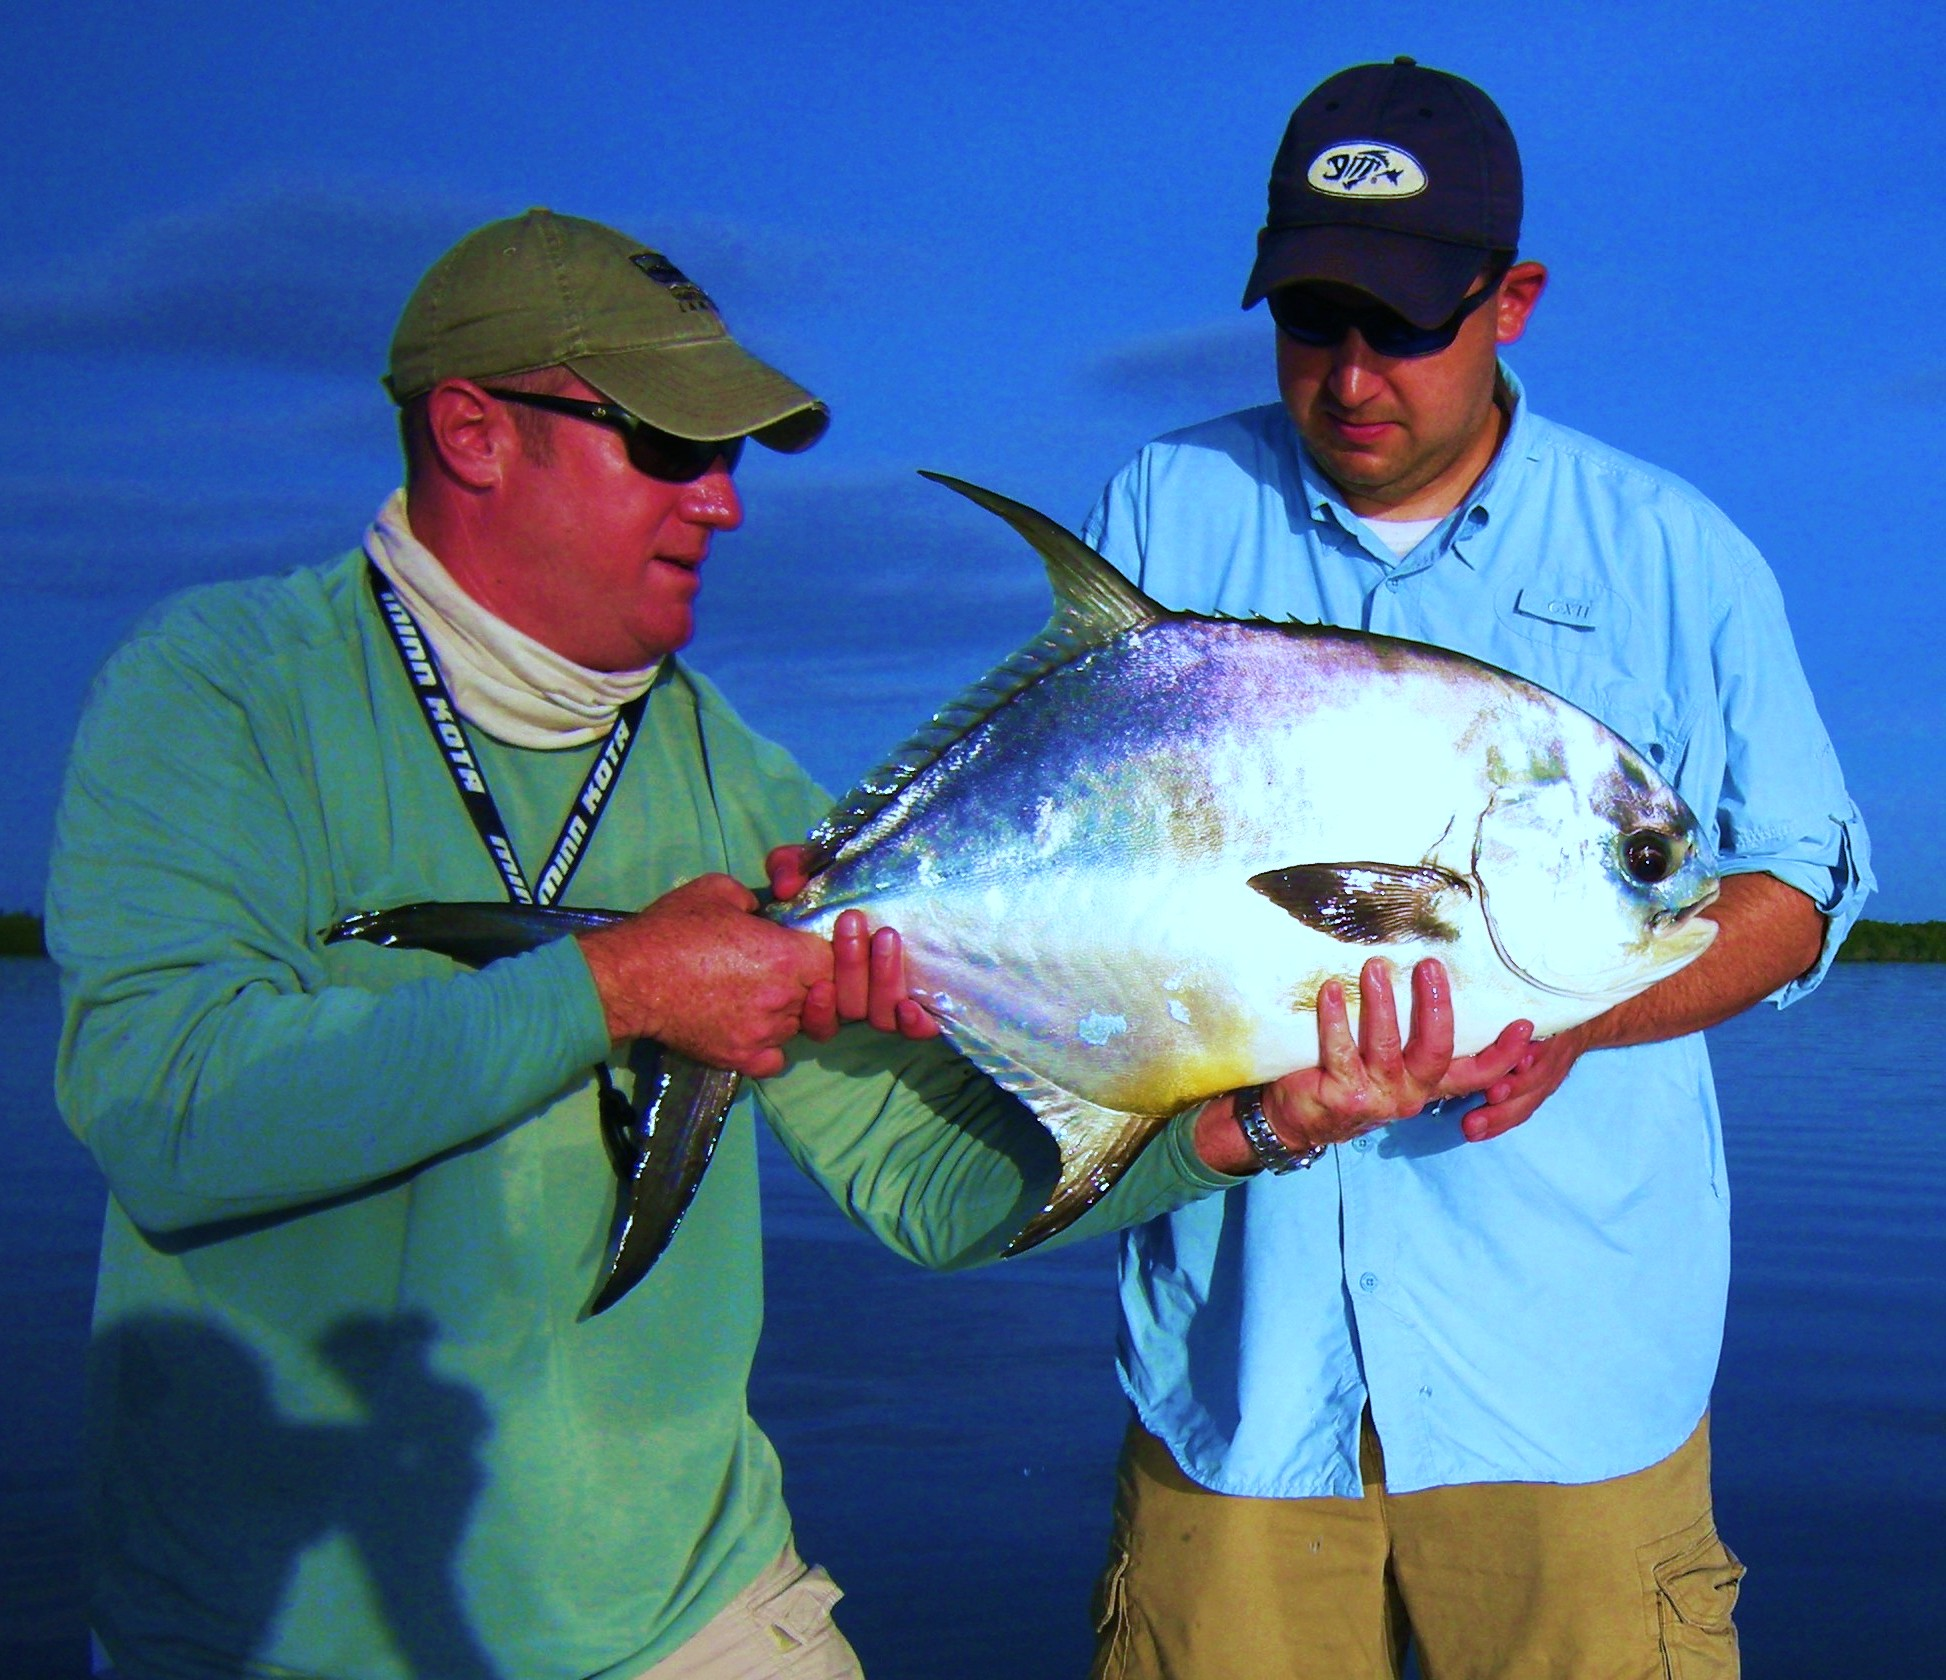 South florida outdoor adventures for fishing sport for Vero beach fishing report